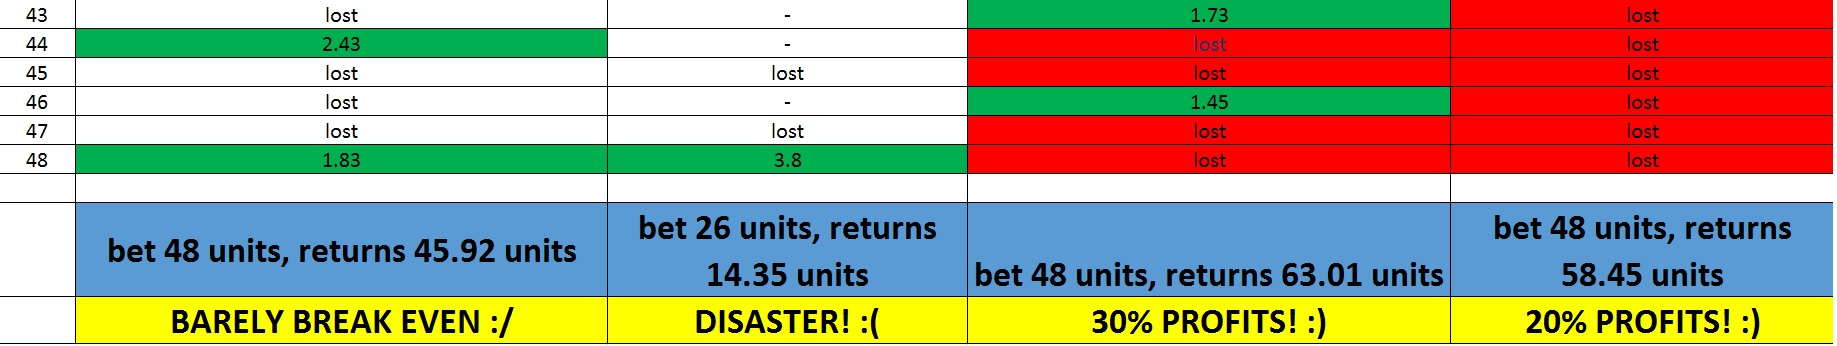 world cup group betting advice